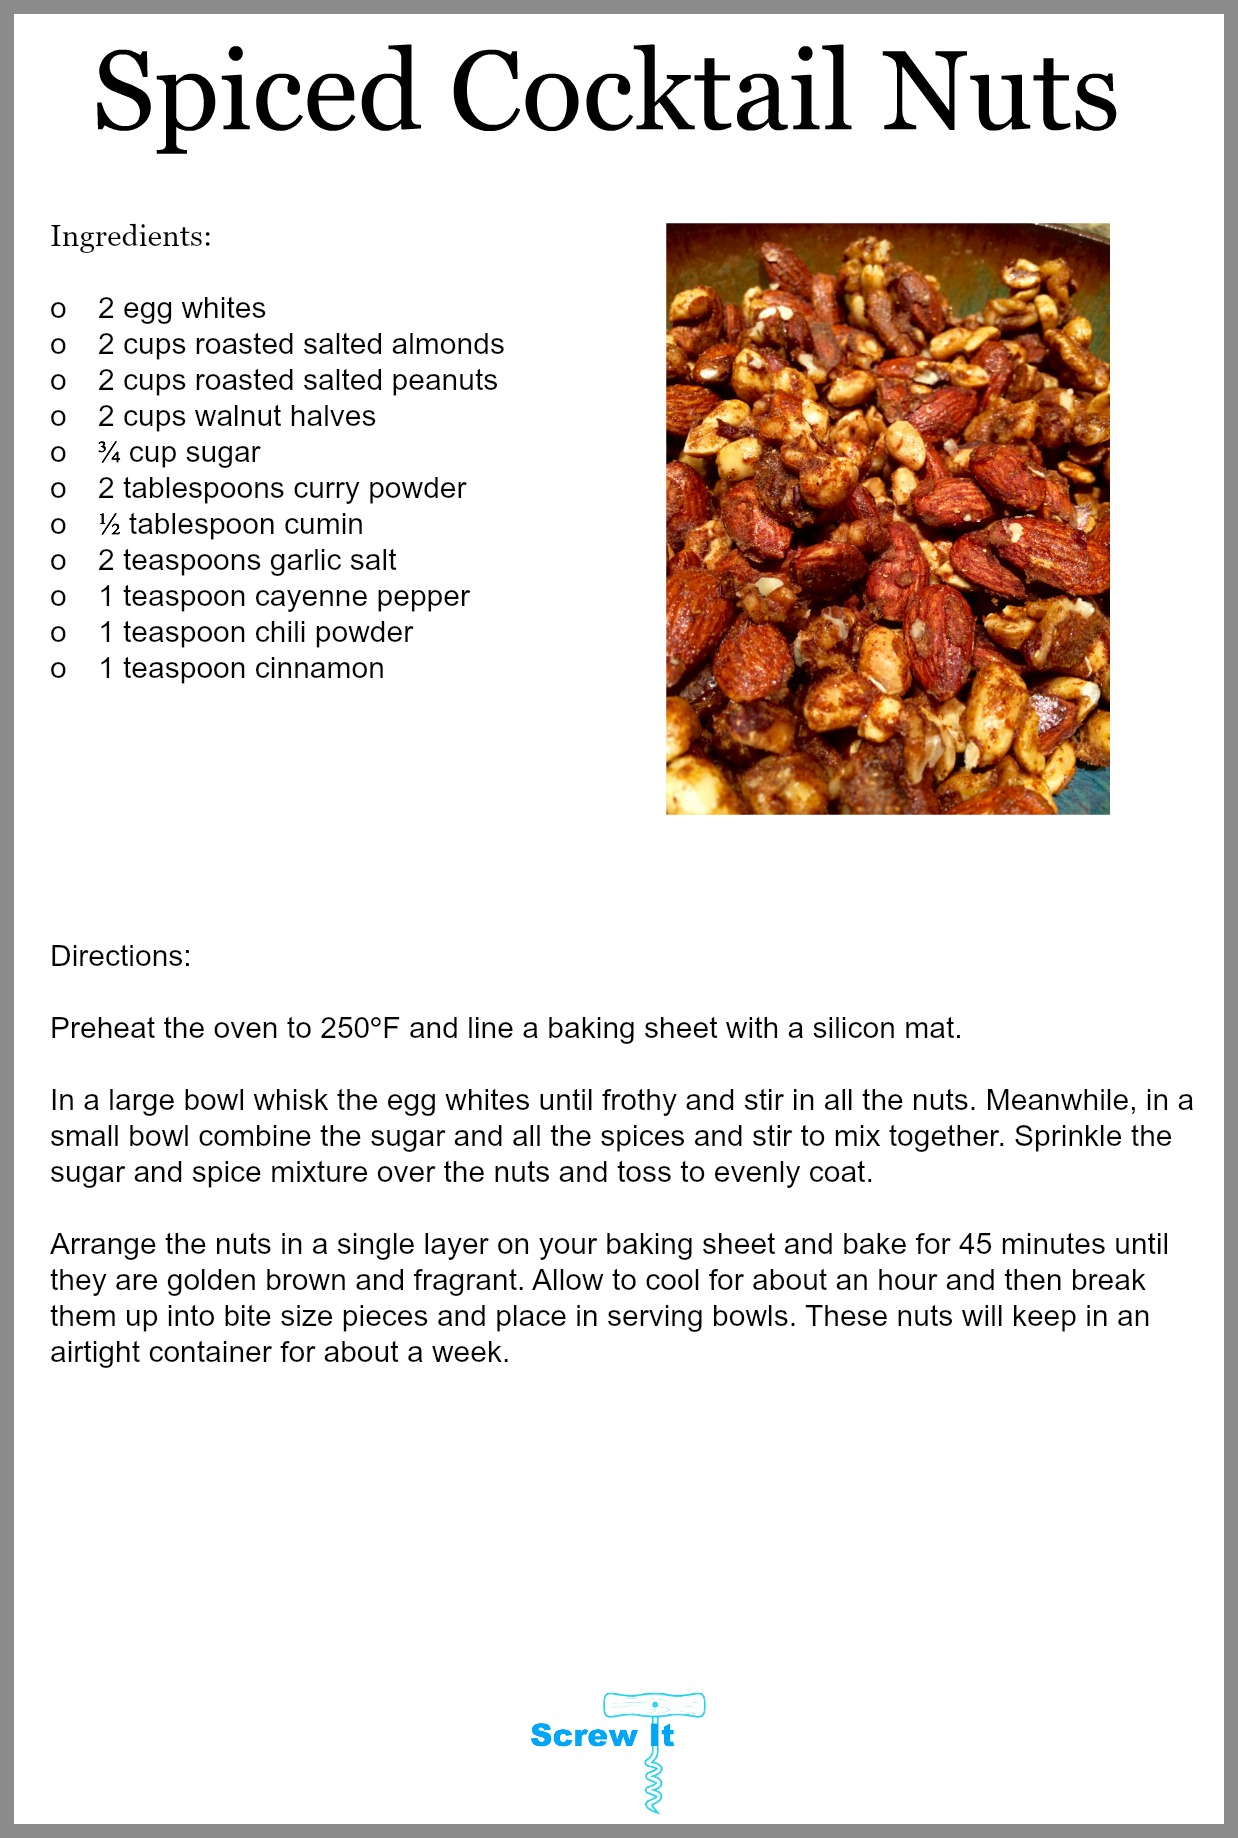 Spiced Cocktail Nuts Recipe.jpg